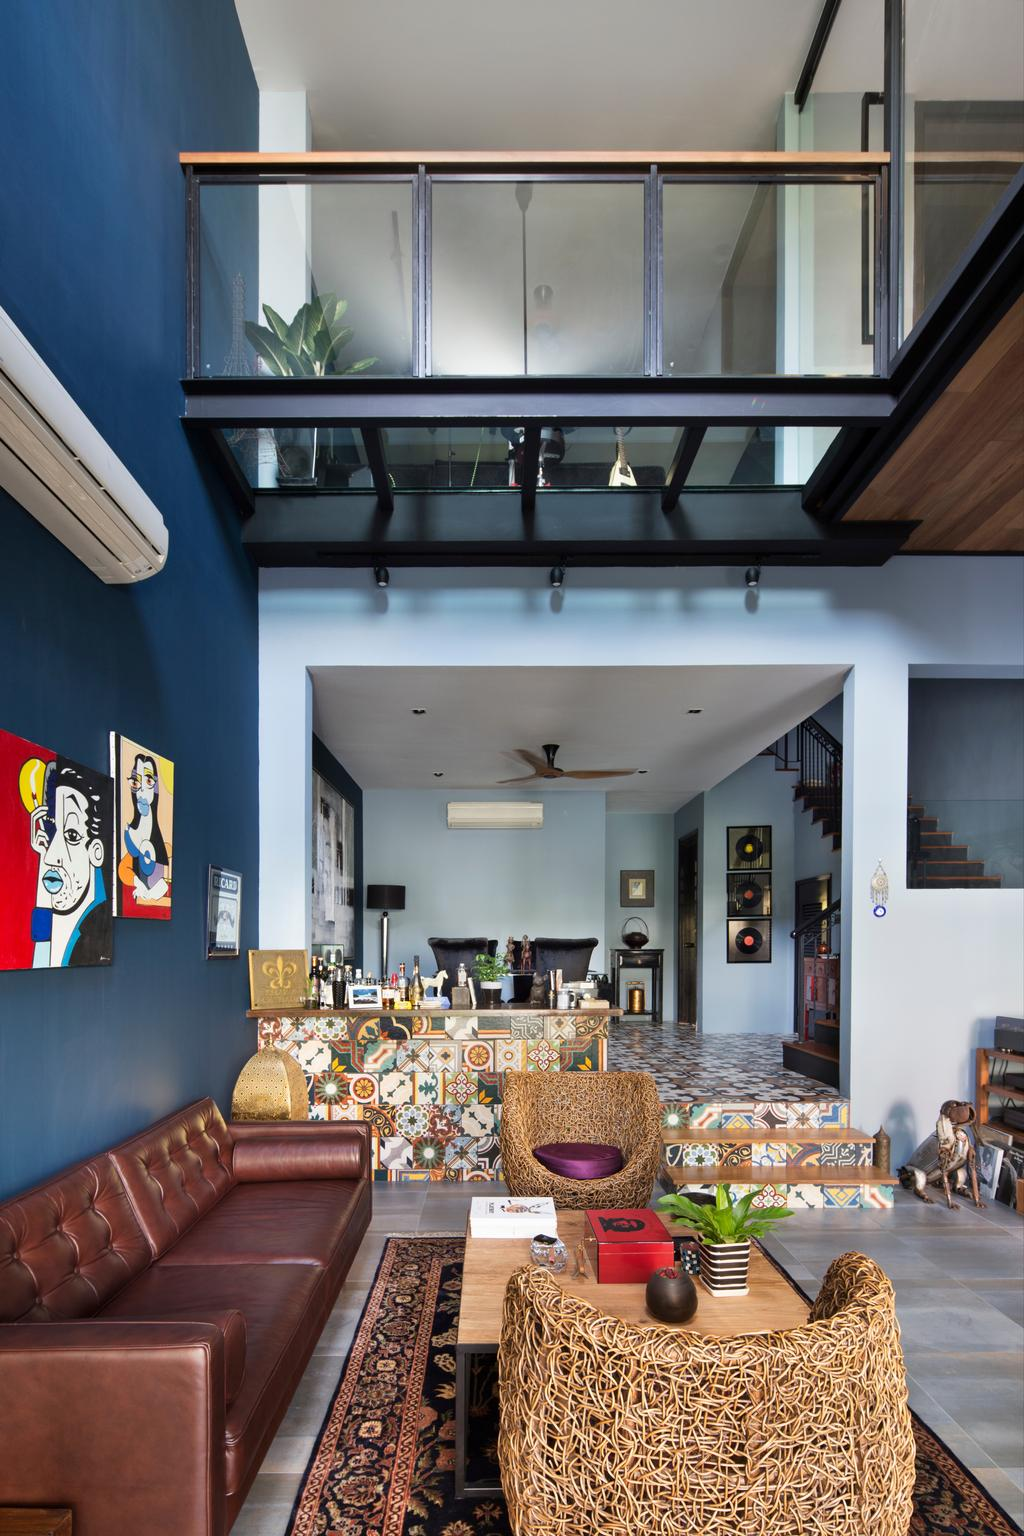 Eclectic, Landed, Eastwood Green, Interior Designer, The Scientist, HDB, Building, Housing, Indoors, Loft, Shelf, Dining Room, Interior Design, Room, Dining Table, Furniture, Table